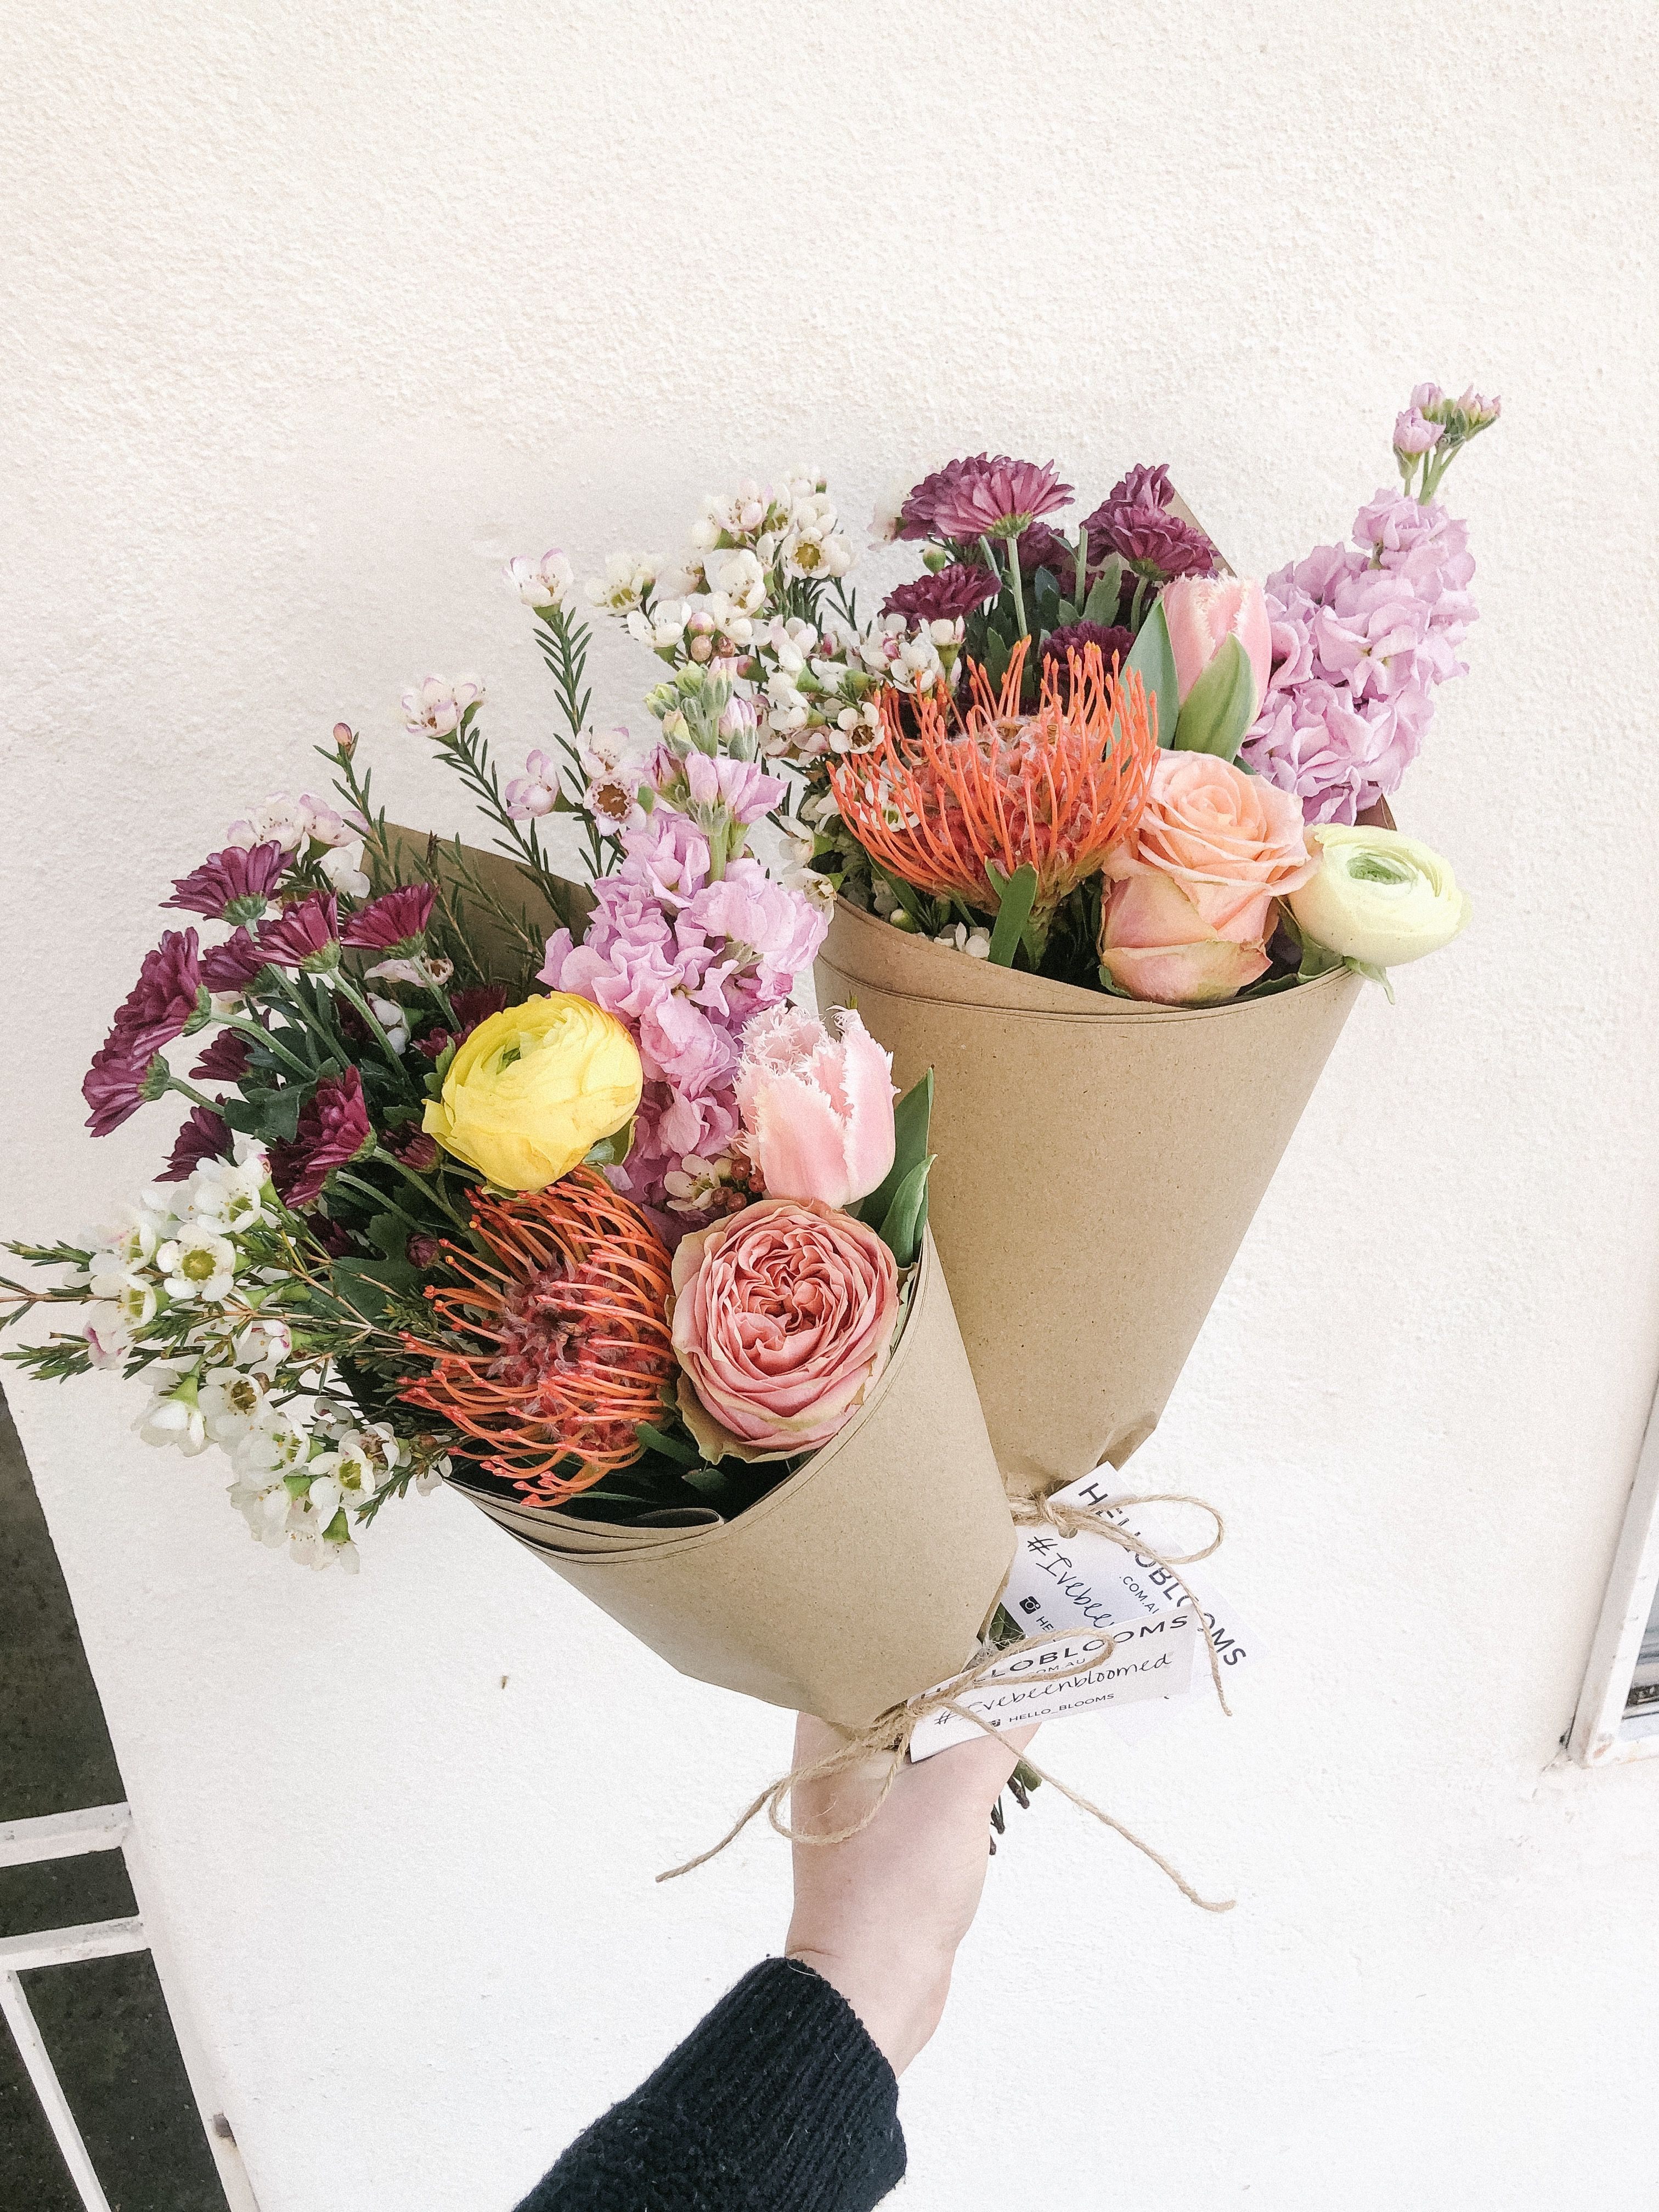 Daily Posy 5 Oct In 2020 Fresh Flowers Arrangements Flower Lover Flowers